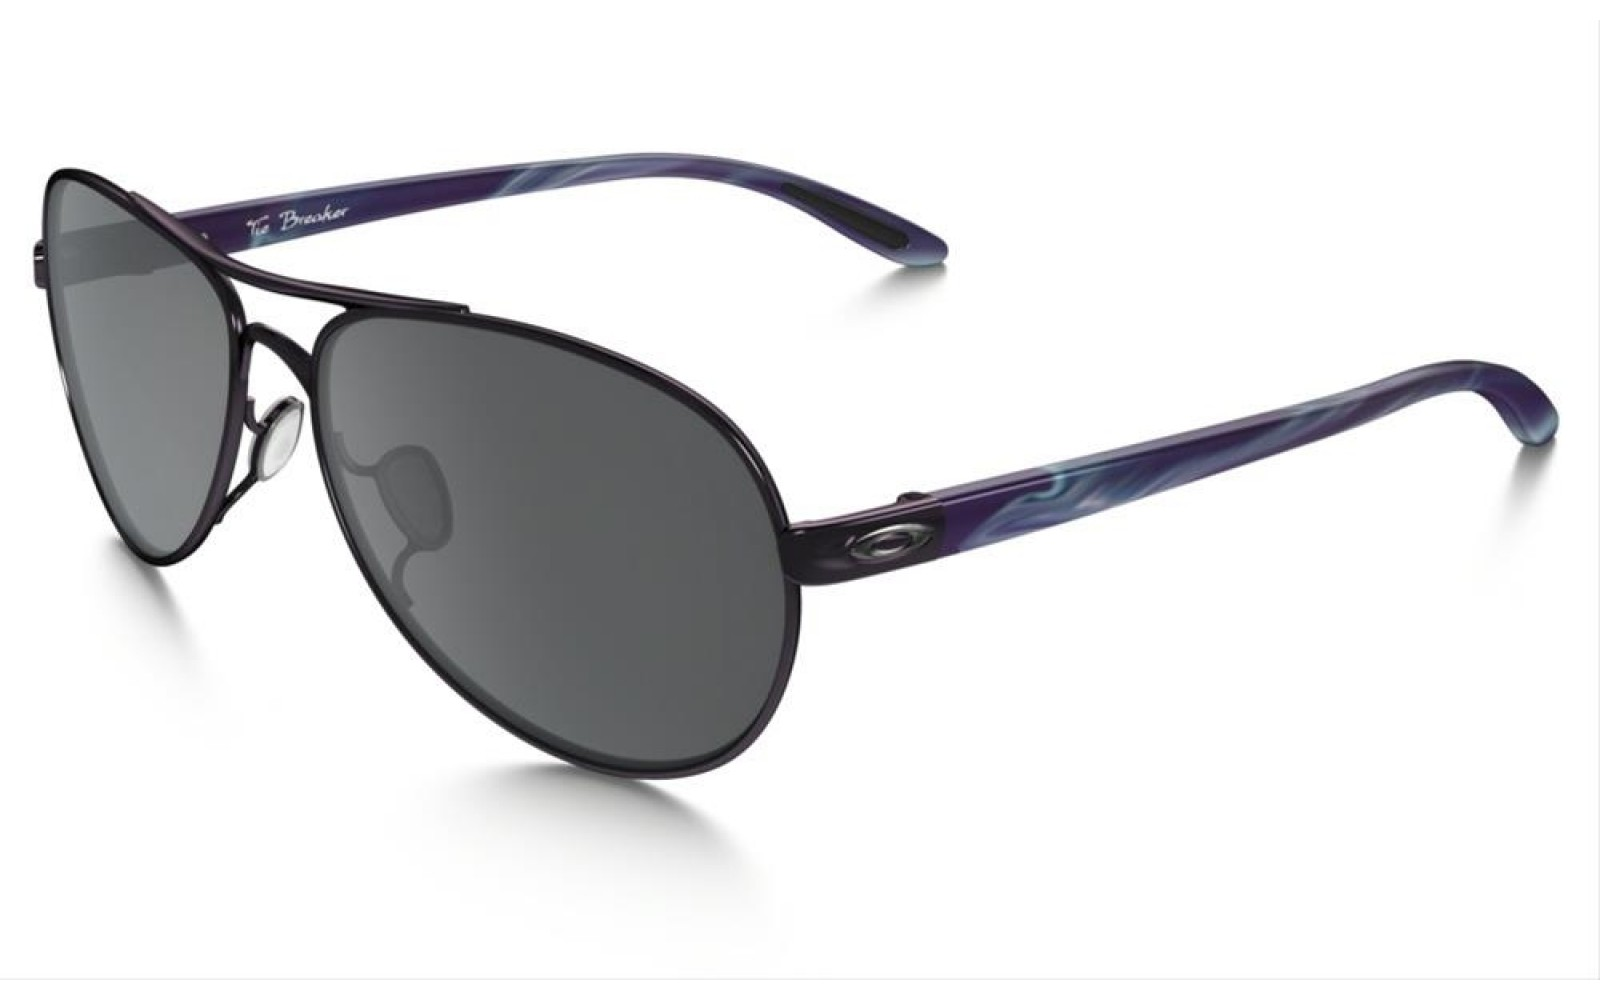 Oakley Tie Breaker - Polished Blackberry / Black Iridium - OO4108-05 Zonnebril